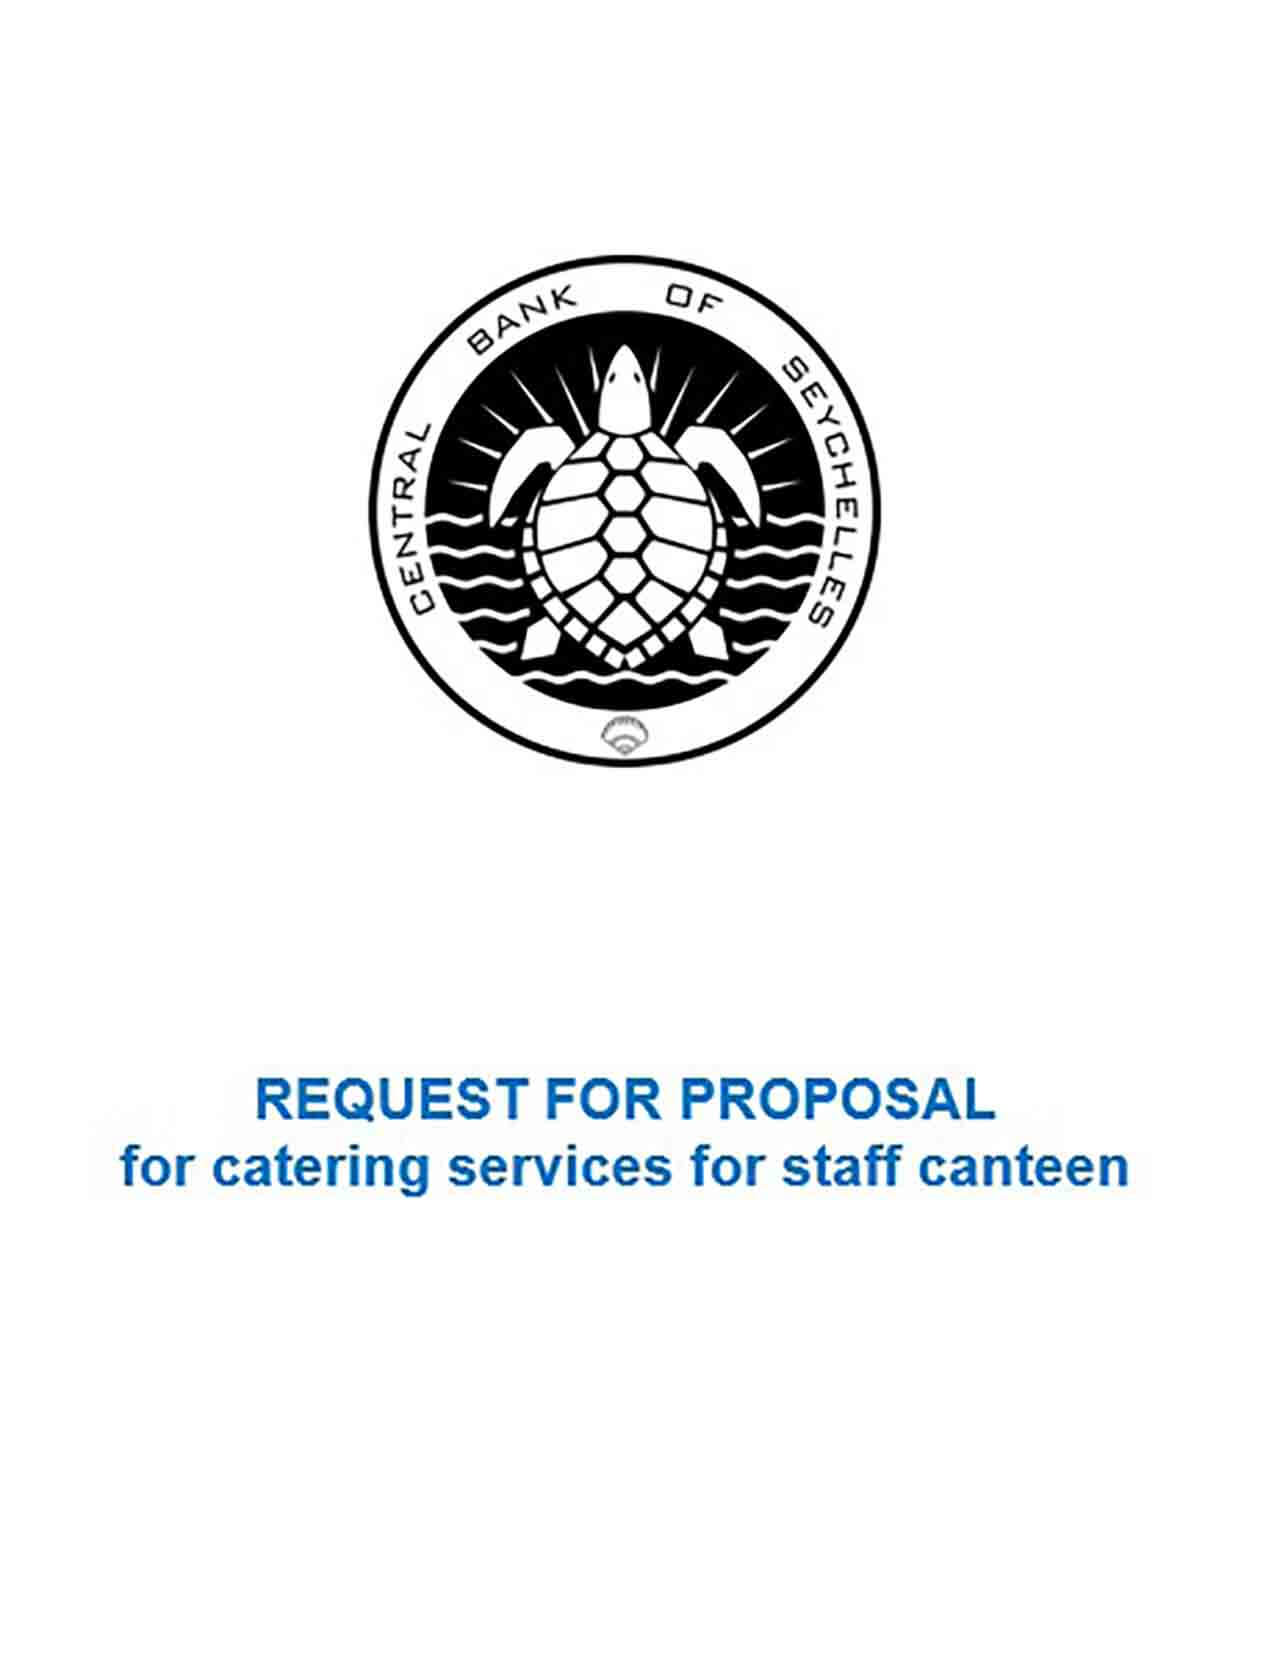 Catering Services Proposal Letter